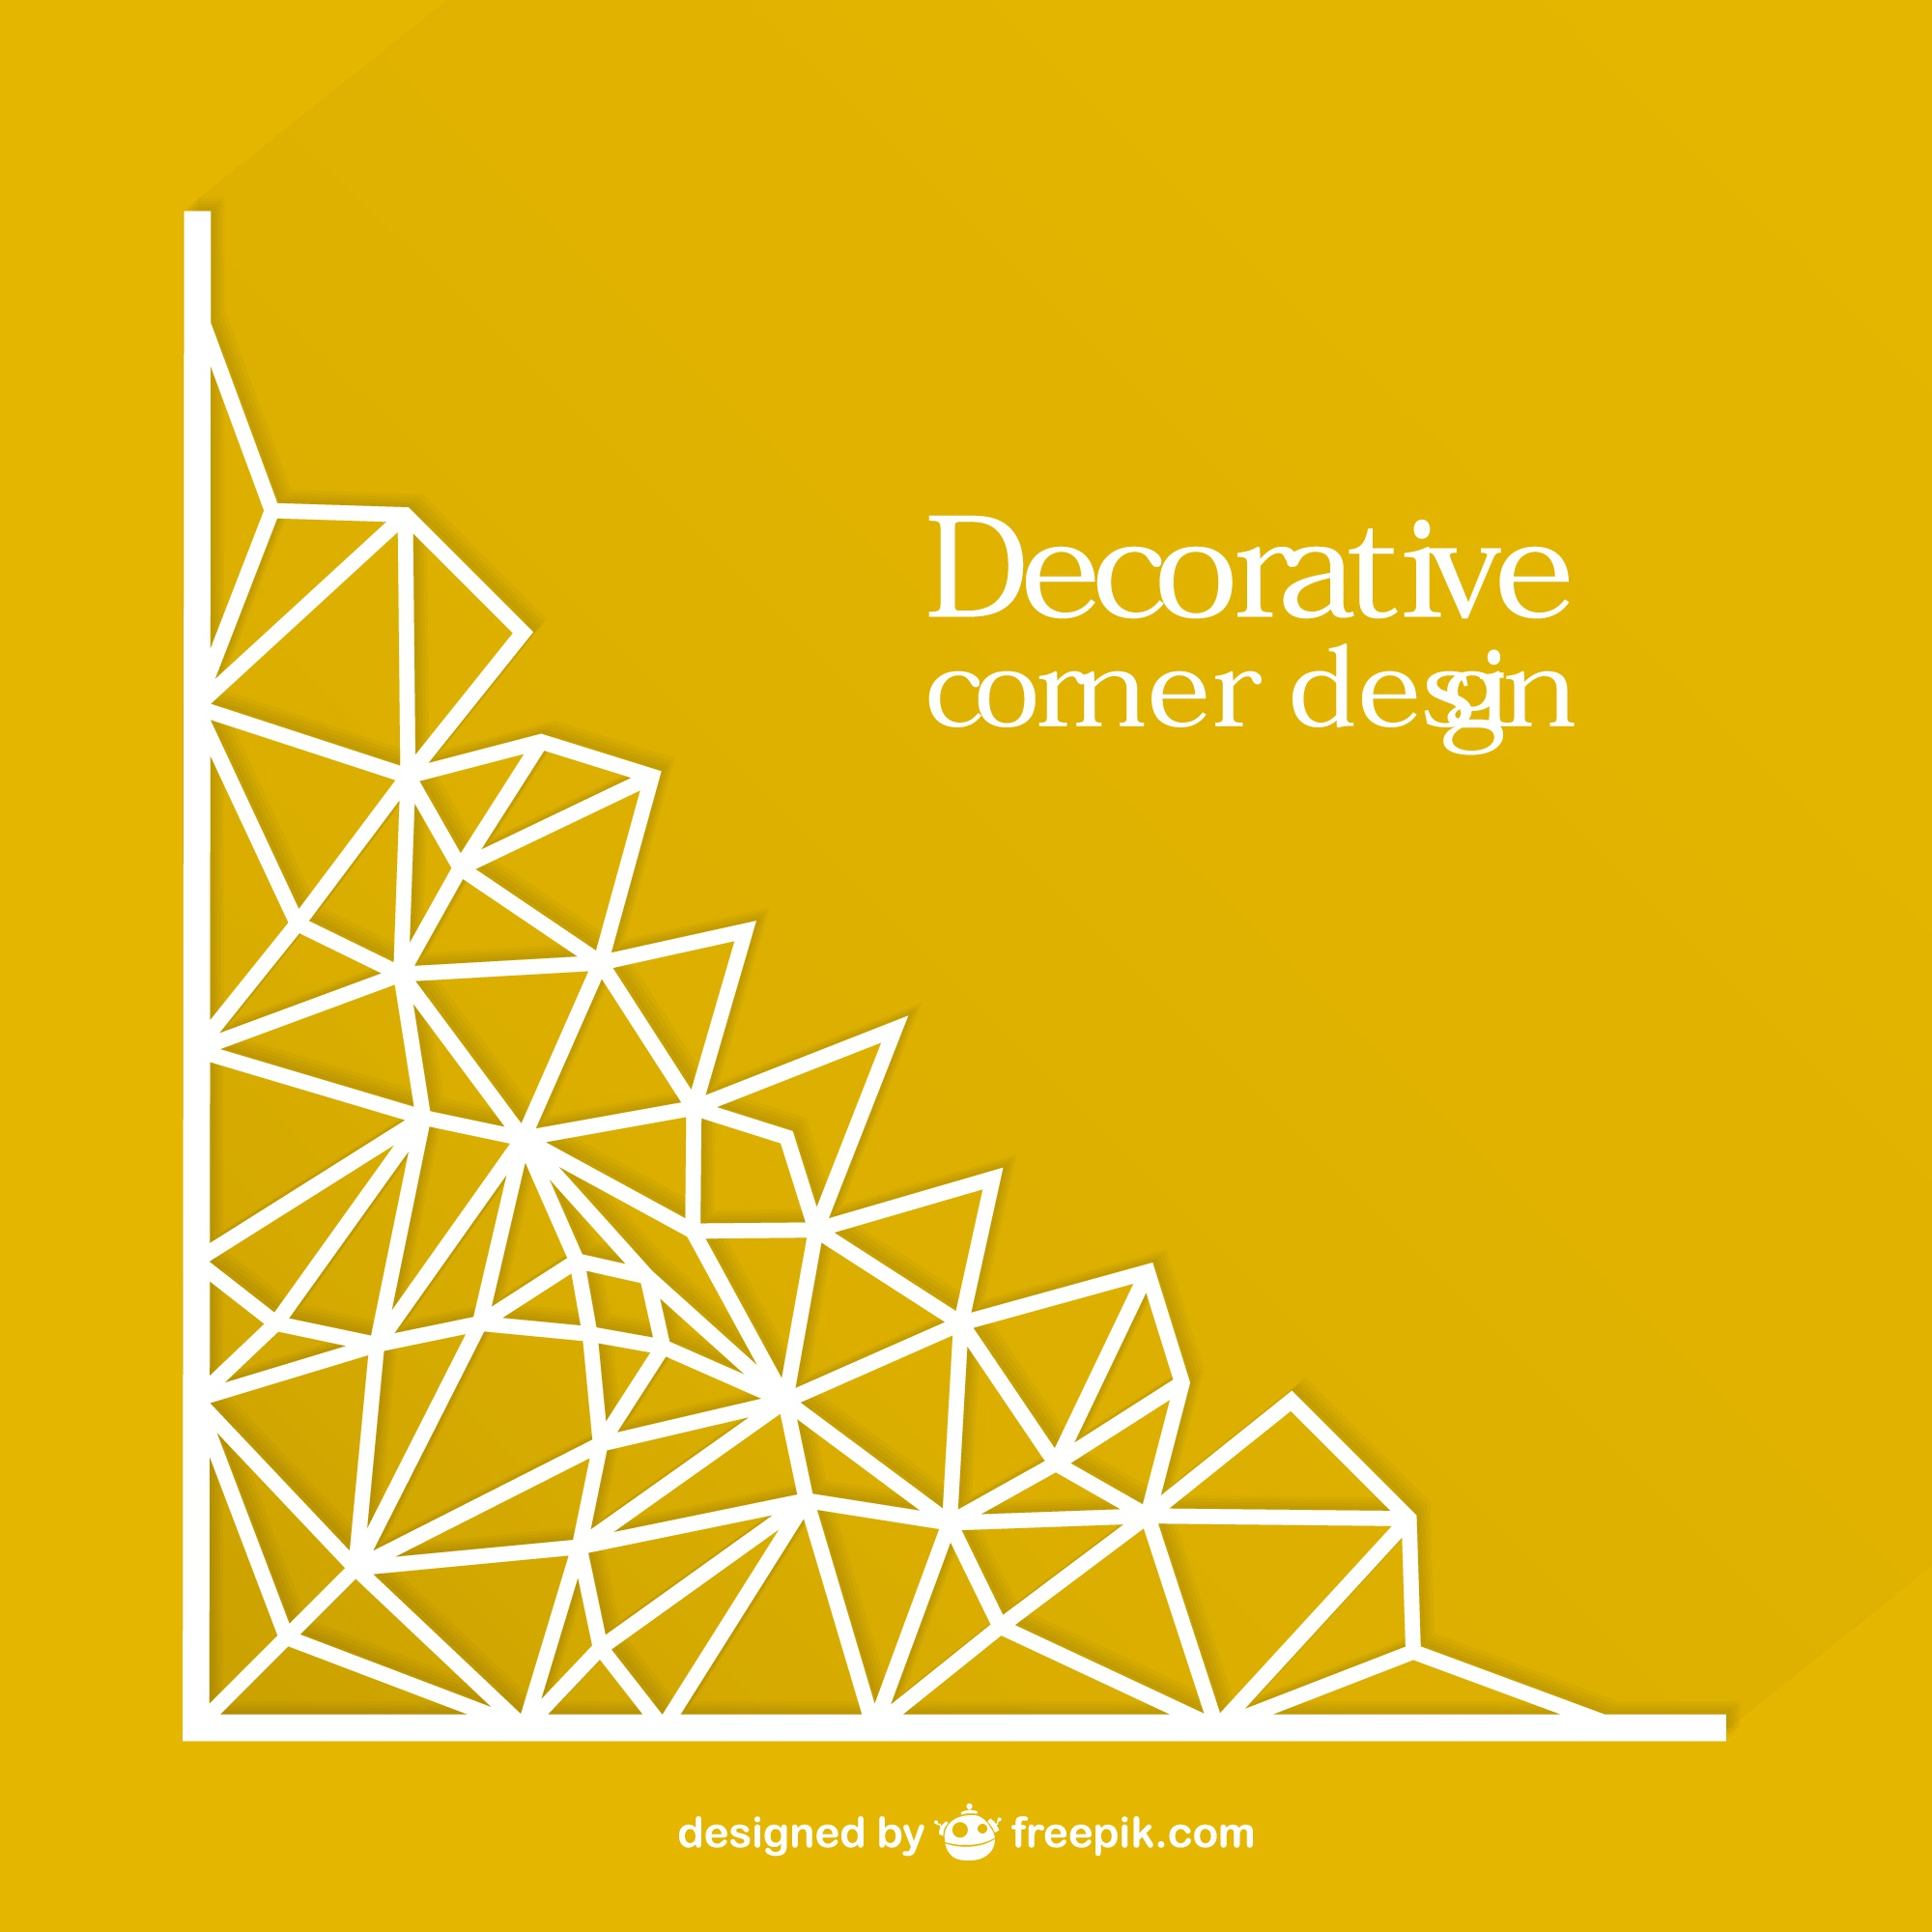 Decorative corner design vector